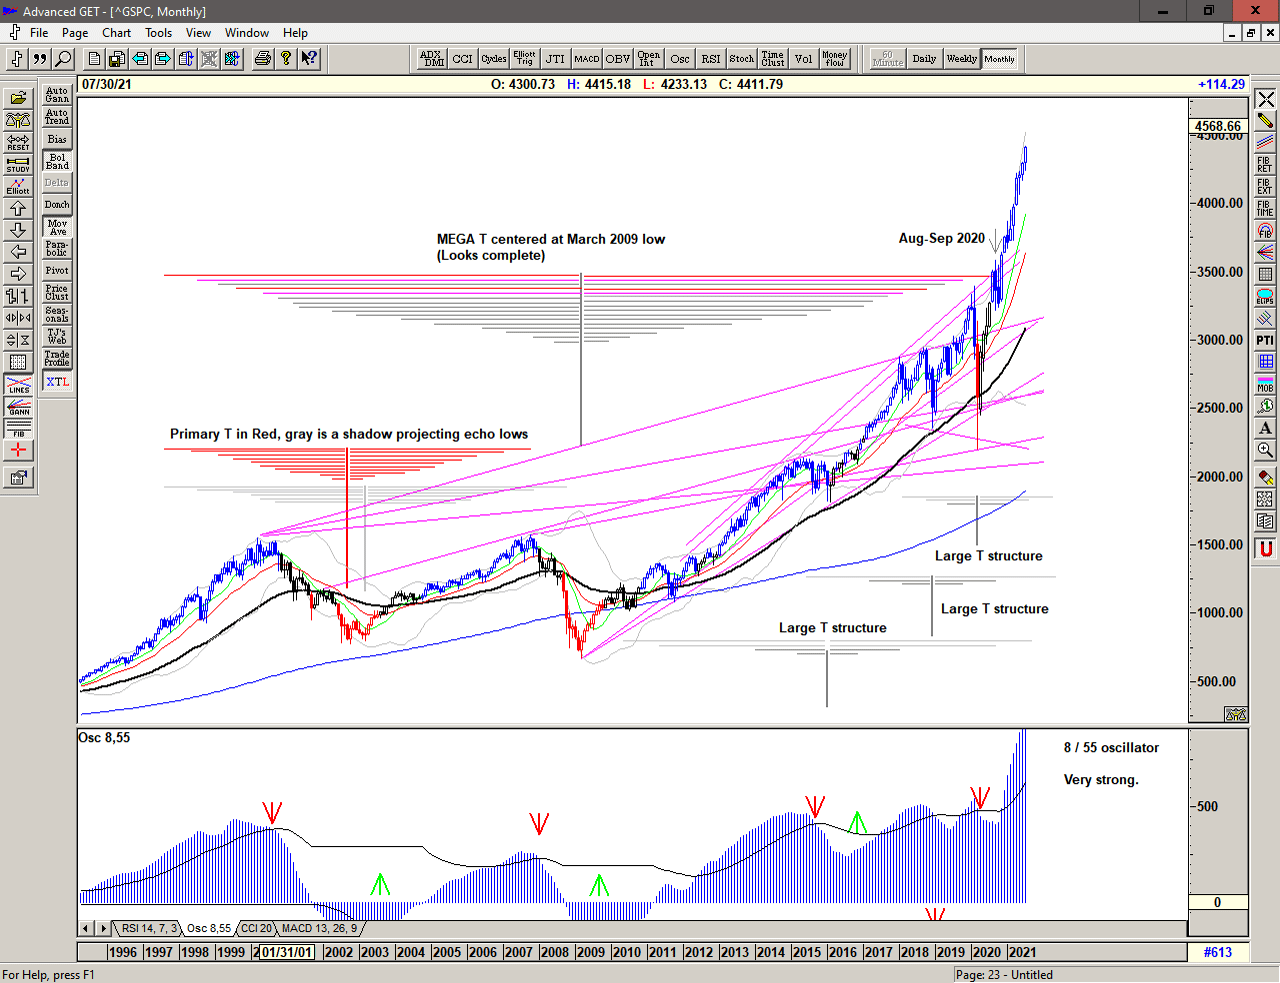 Monthly chart of S&P 500 for 26 July 2021